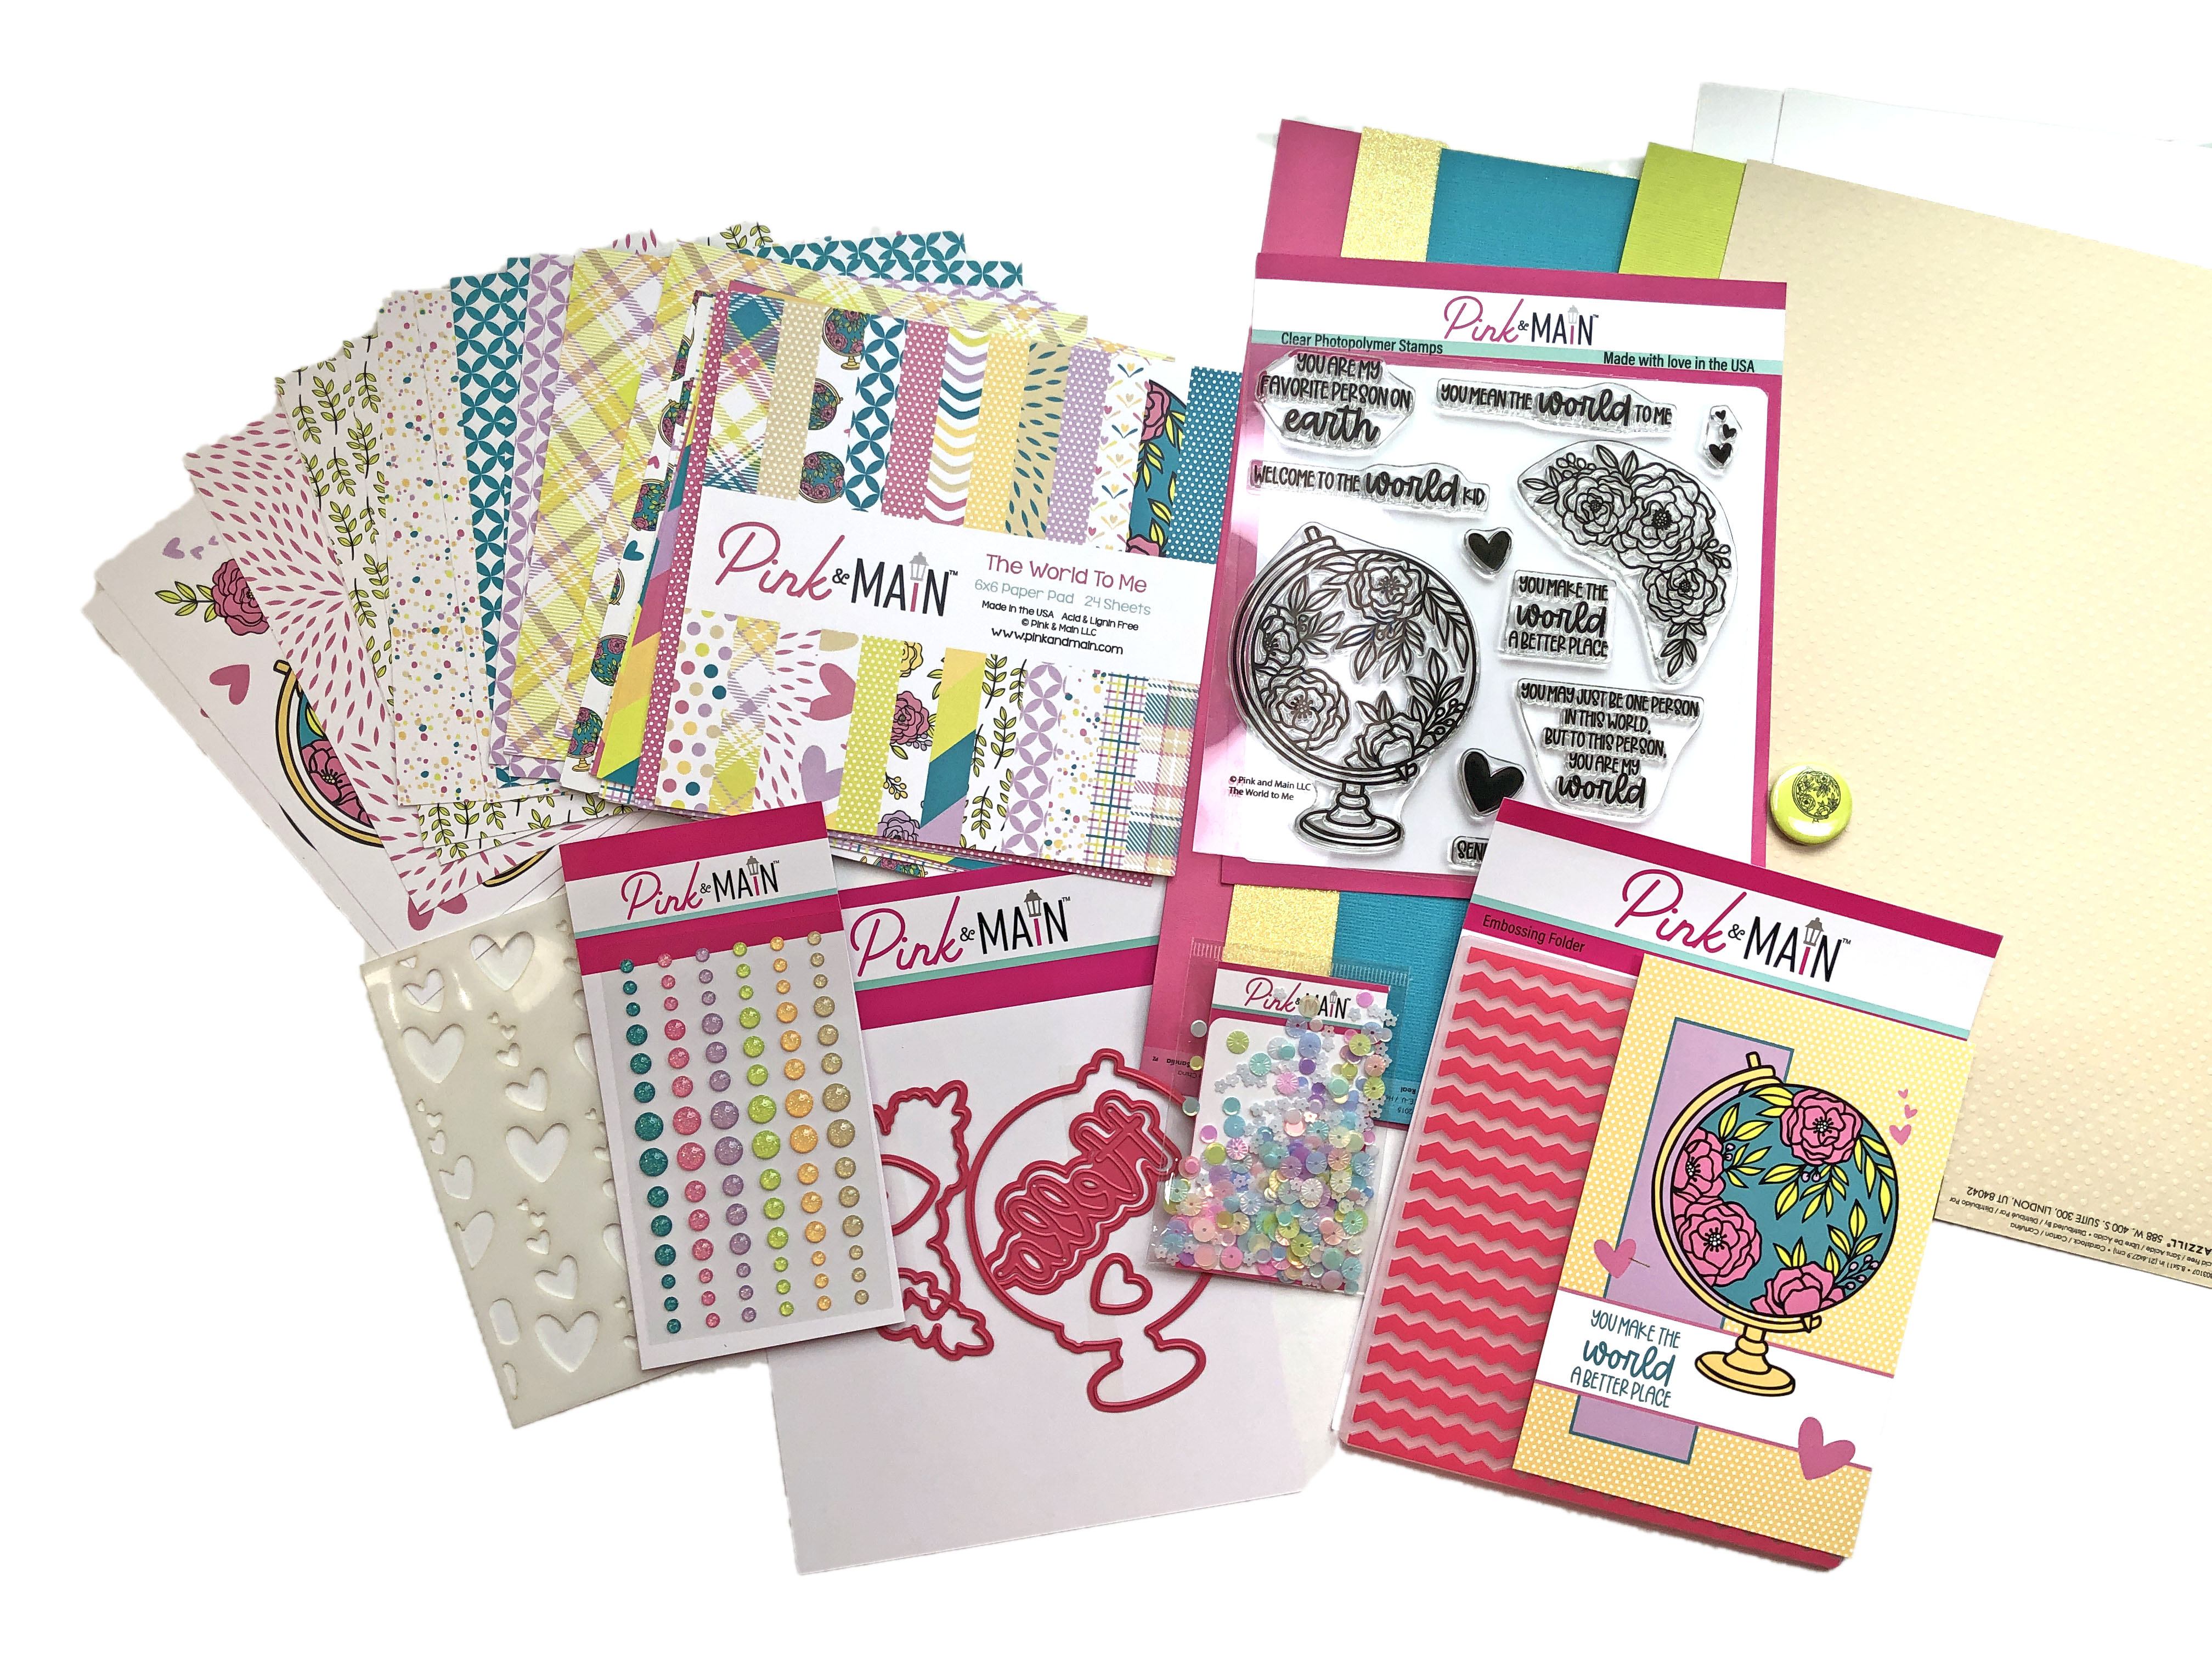 Pink and Main August 2021 Crafty Courtyard Kit